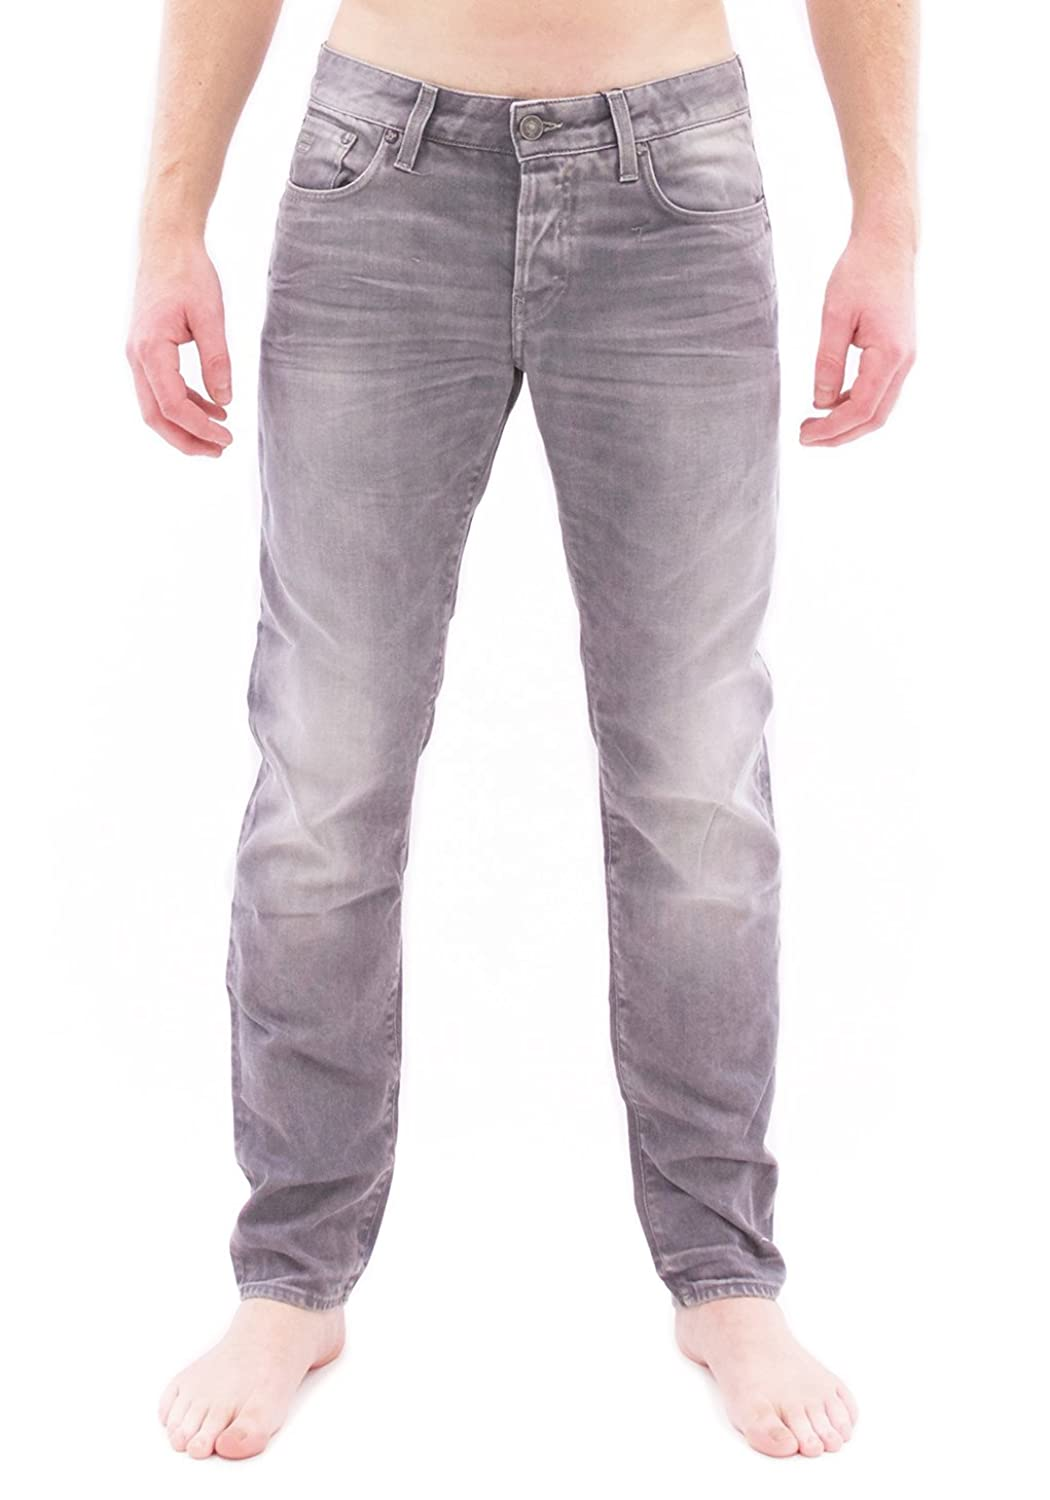 G-Star 3301 Jeans (40 x 32, Light Aged)